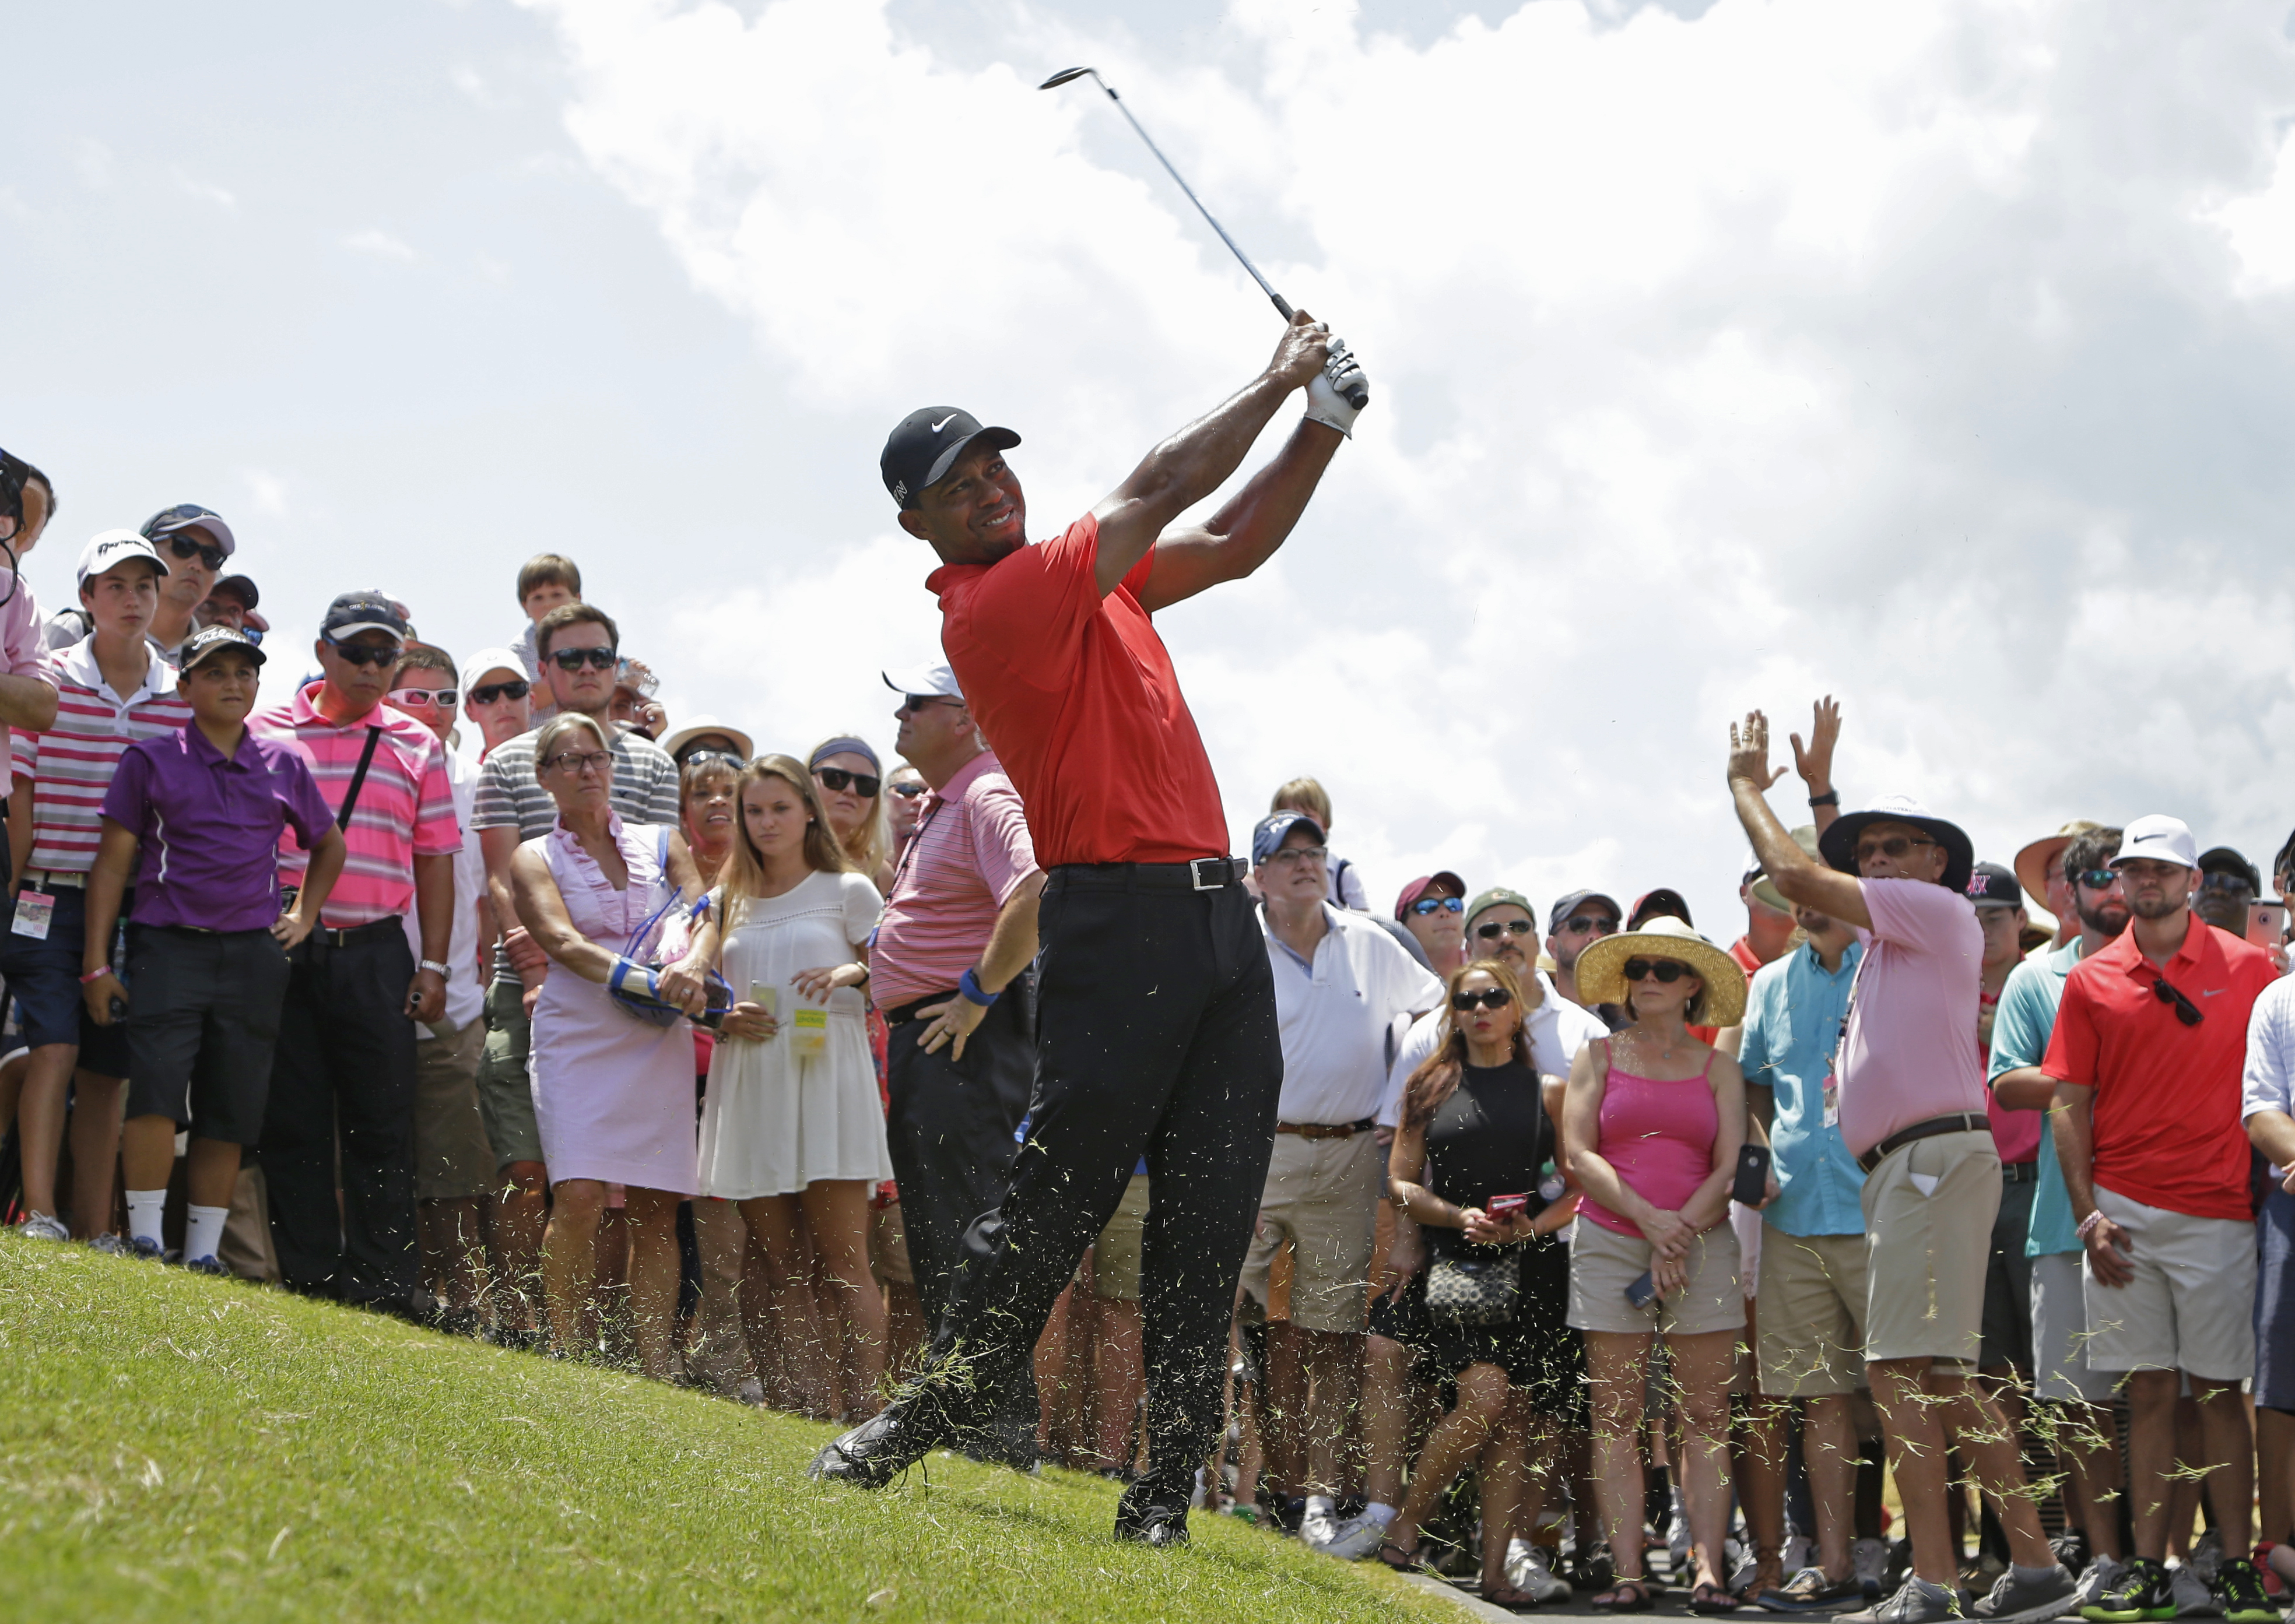 Tiger Woods hits from the rough off the 18th fairway during the final round of the Players Championship on Sunday in Ponte Vedra Beach, Florida.